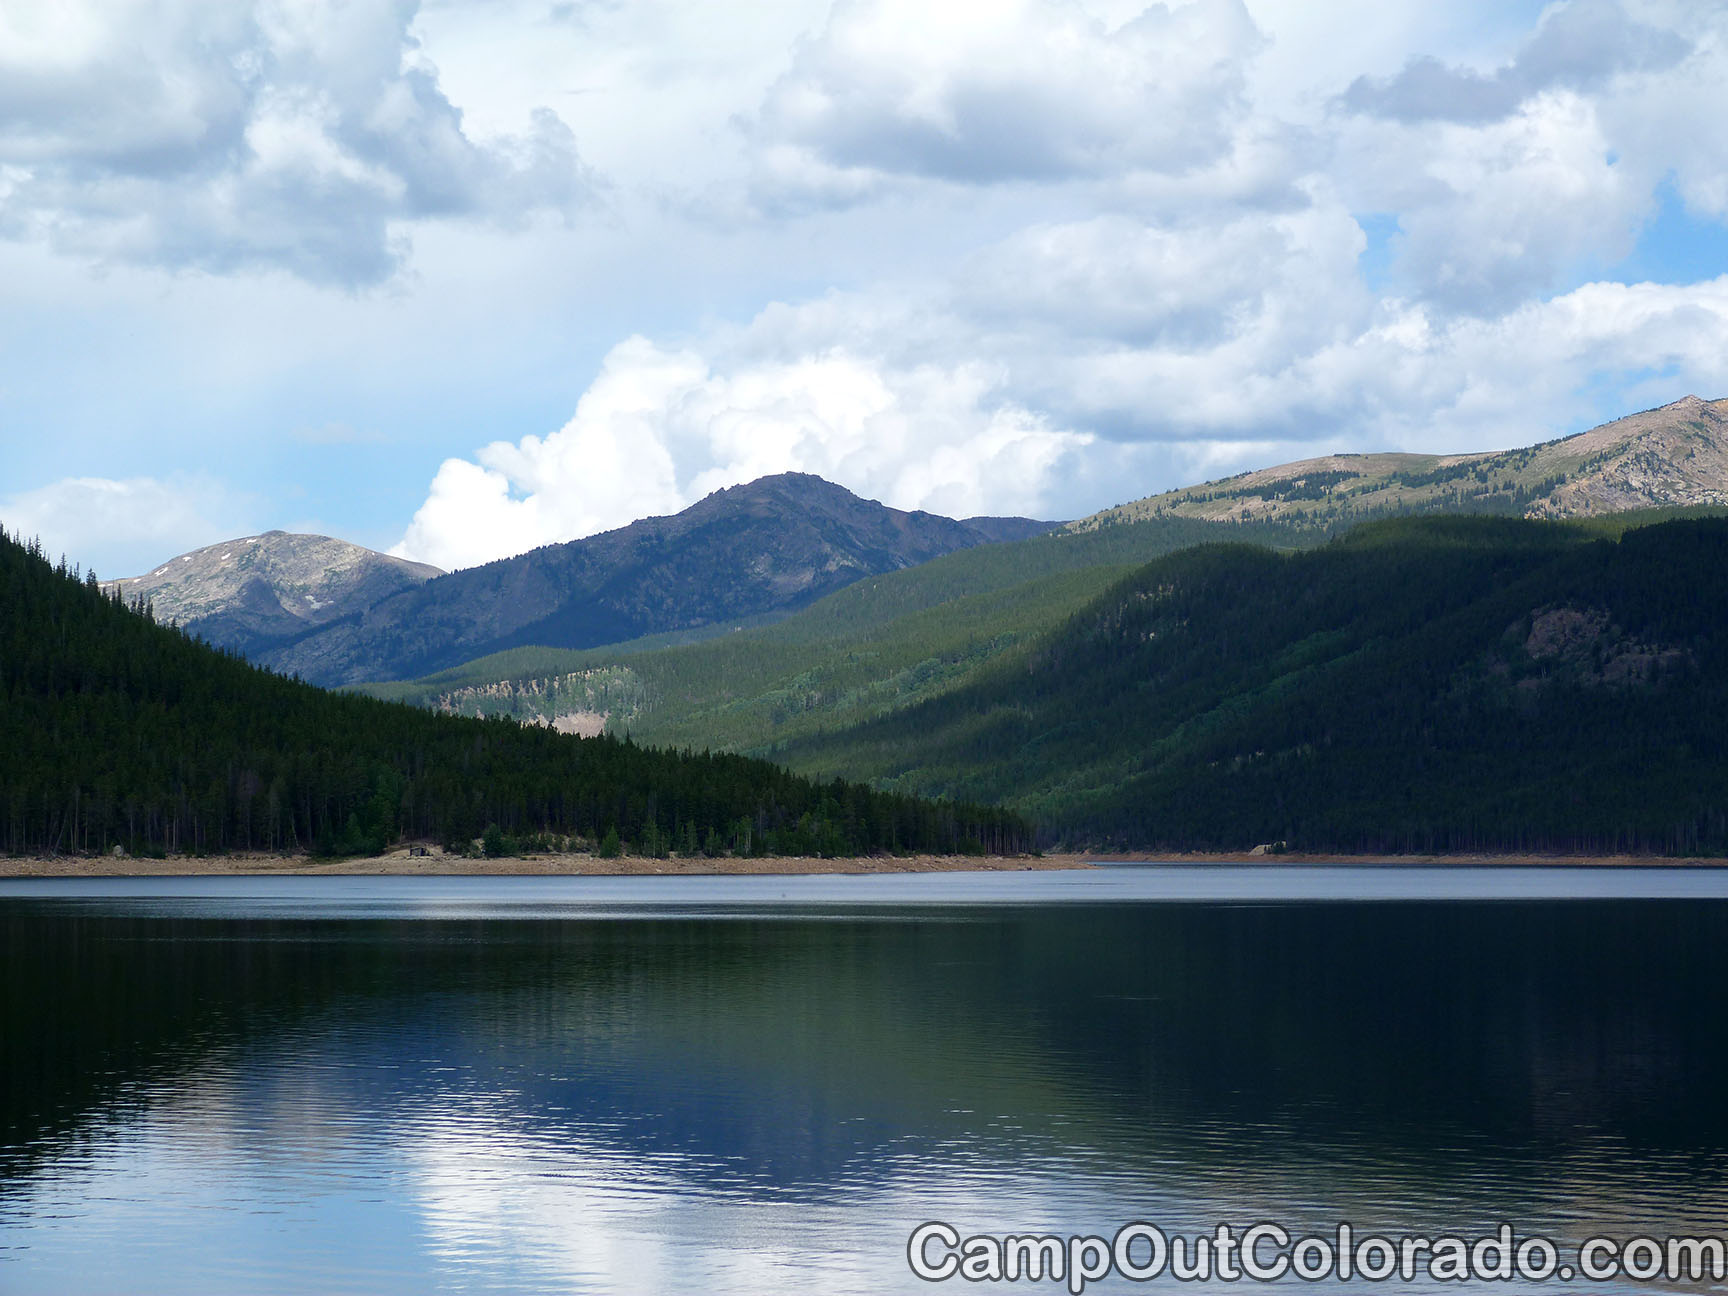 Camp-out-colorado-turquoise-lake-inlet